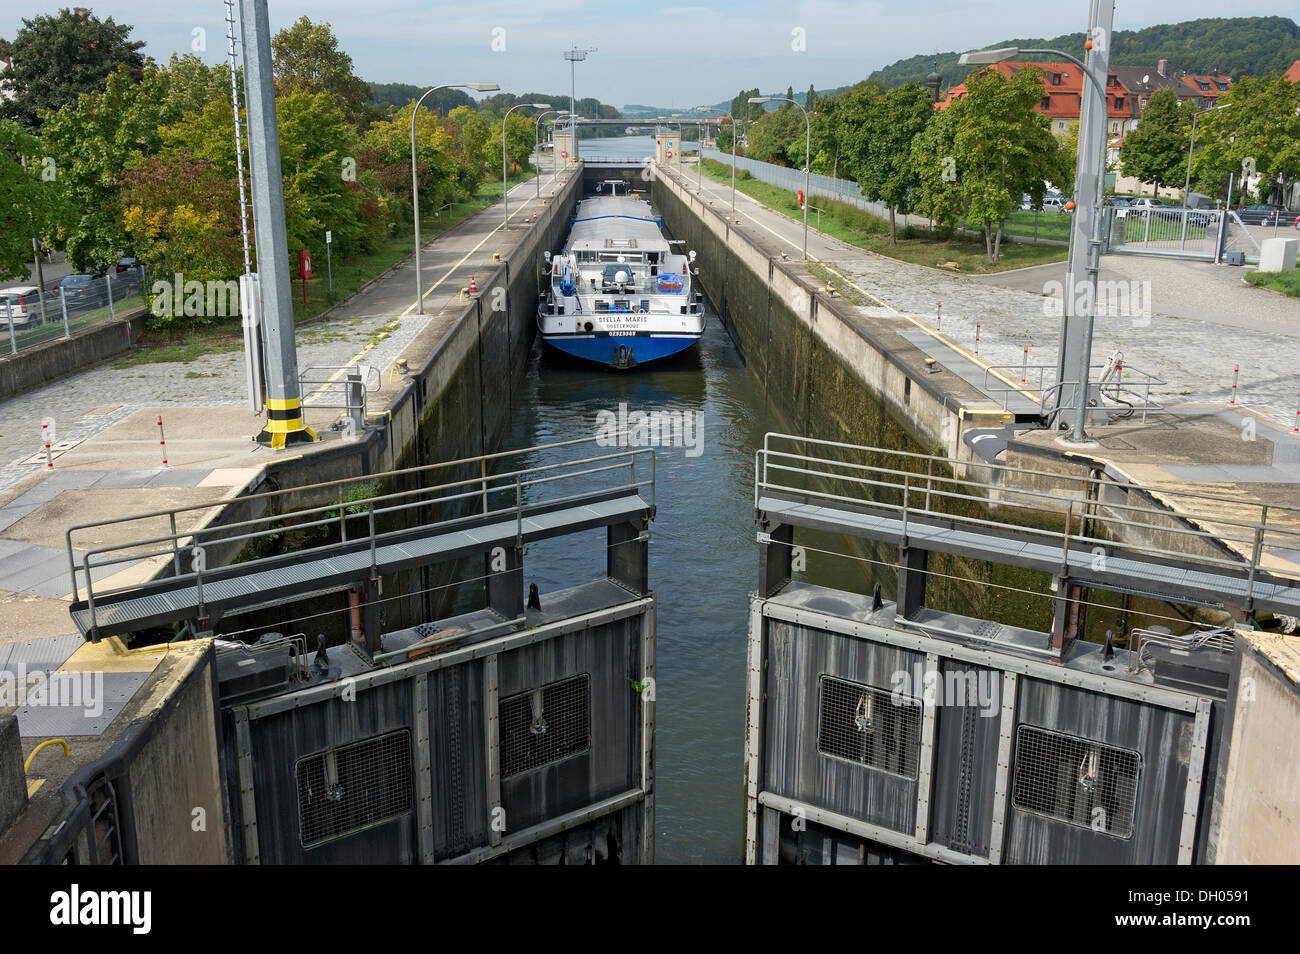 Cargo ship in a lock, sluice gates being closed for flooding, Rhine–Main–Danube Canal, Regensburg, Upper Palatinate, Bavaria - Stock Image